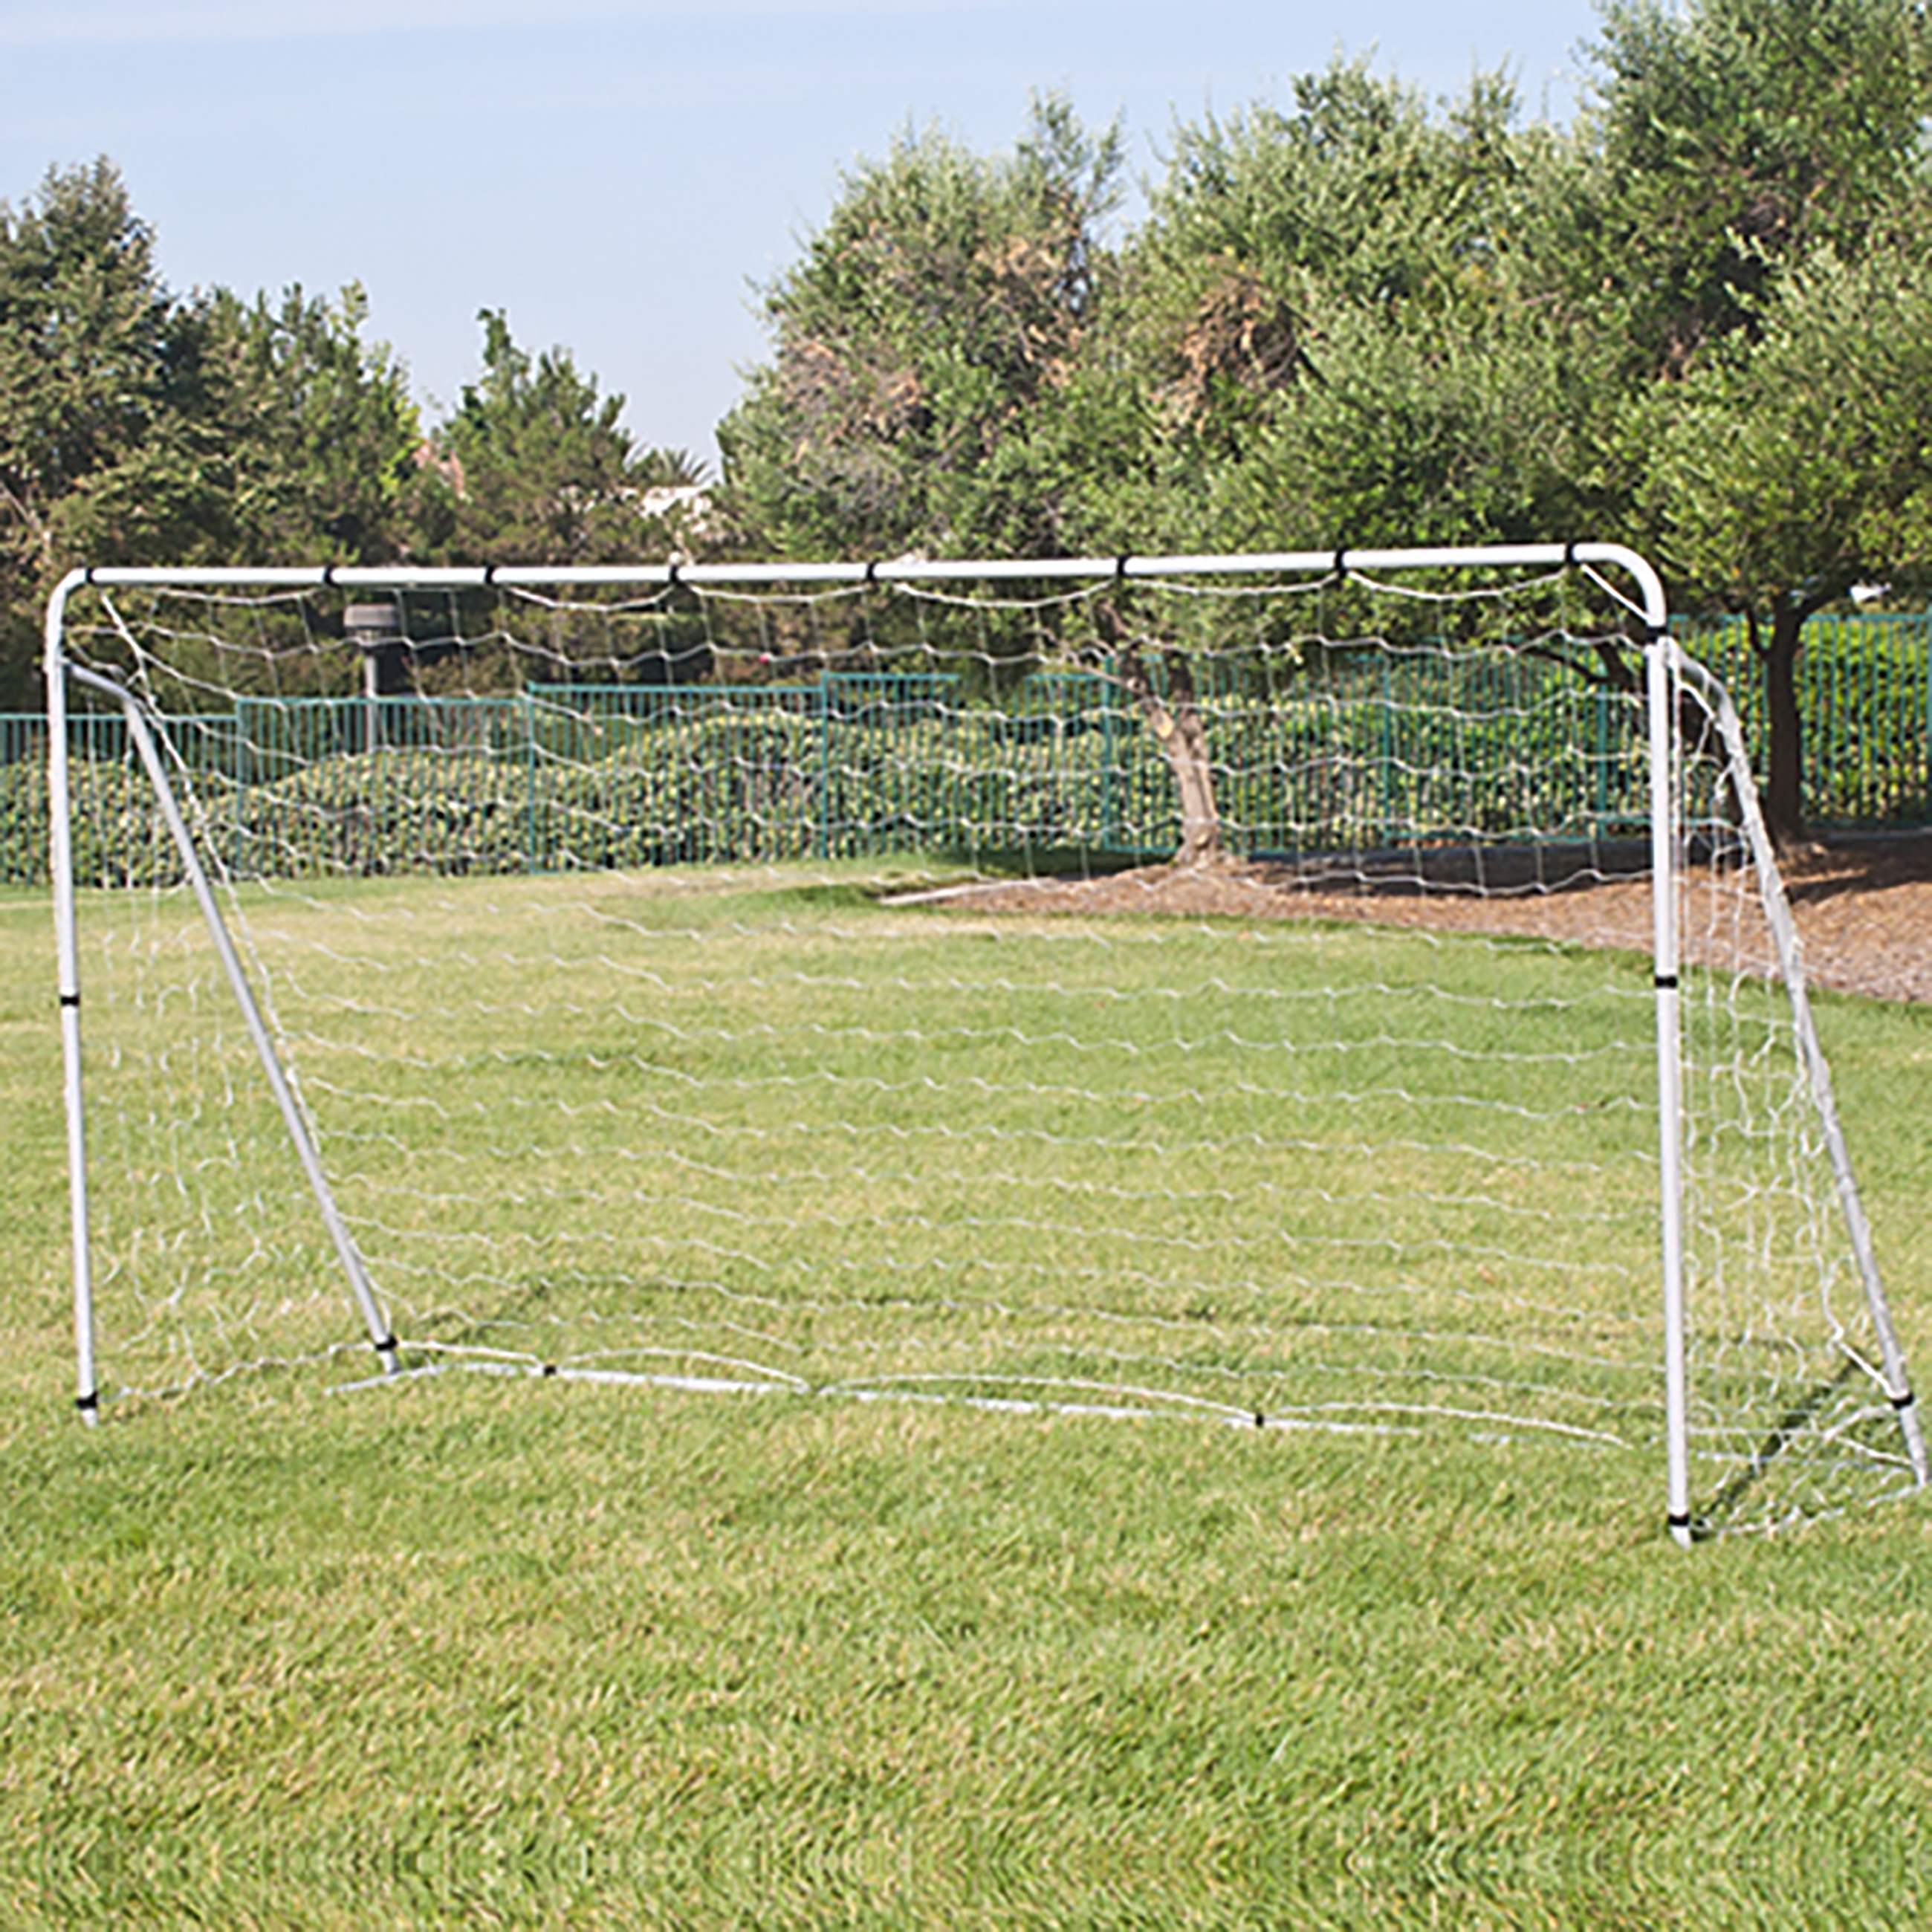 goalrilla striker ultra responsive rebounding soccer net and goal